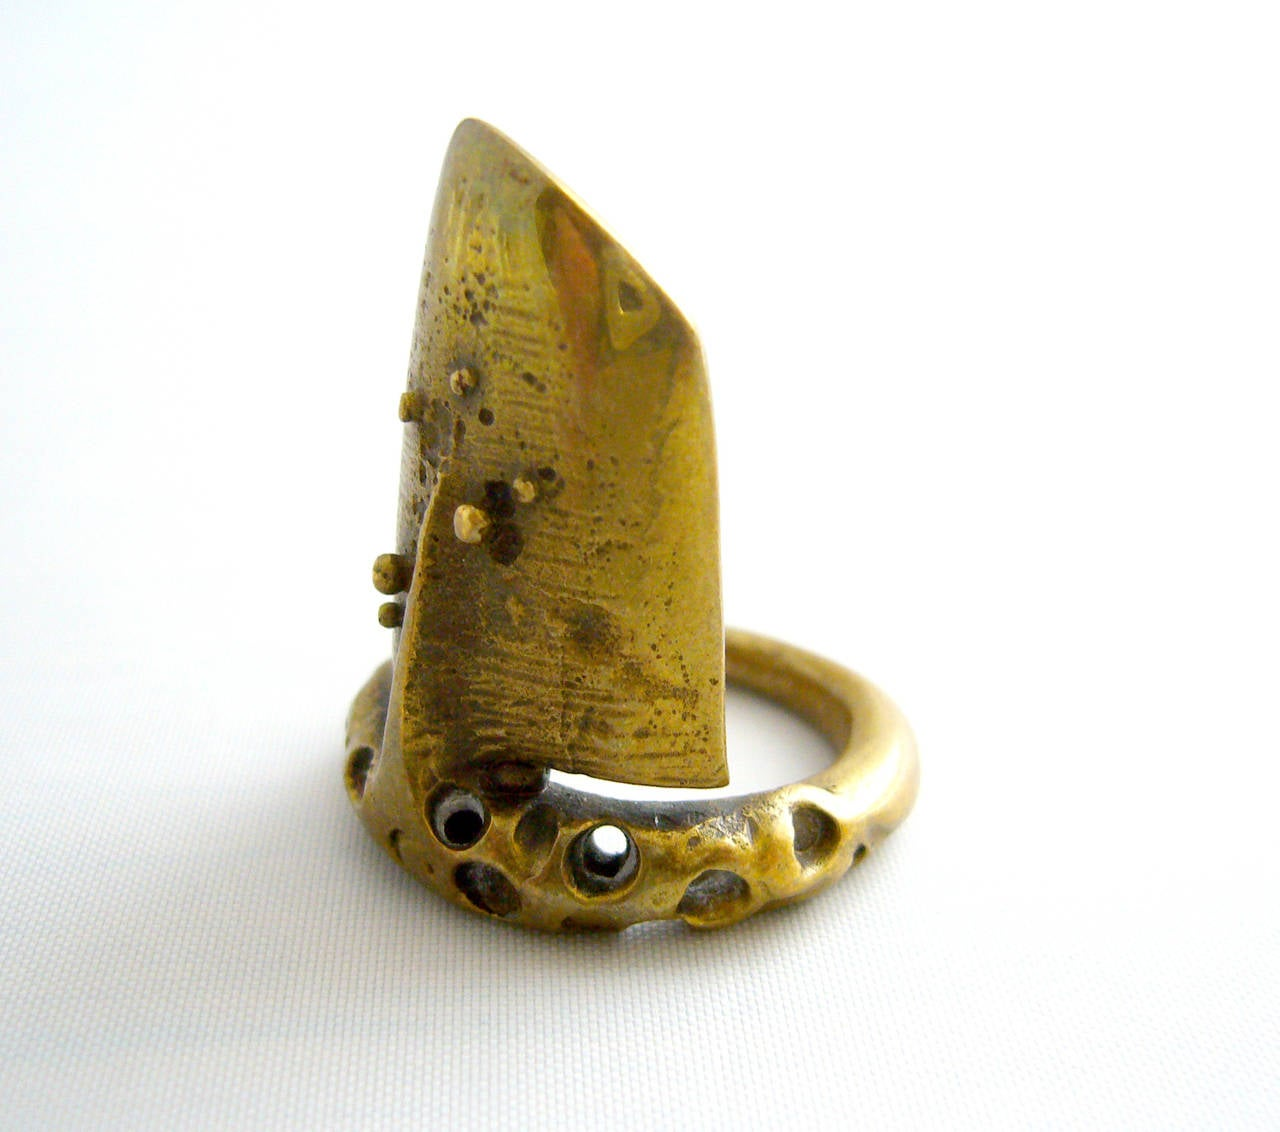 An unusual, textured bronze ring created by Jack Boyd of San Diego circa 1960's.  Ring is a finger size 5.5 - 6 and is unsigned.  In excellent vintage condition.